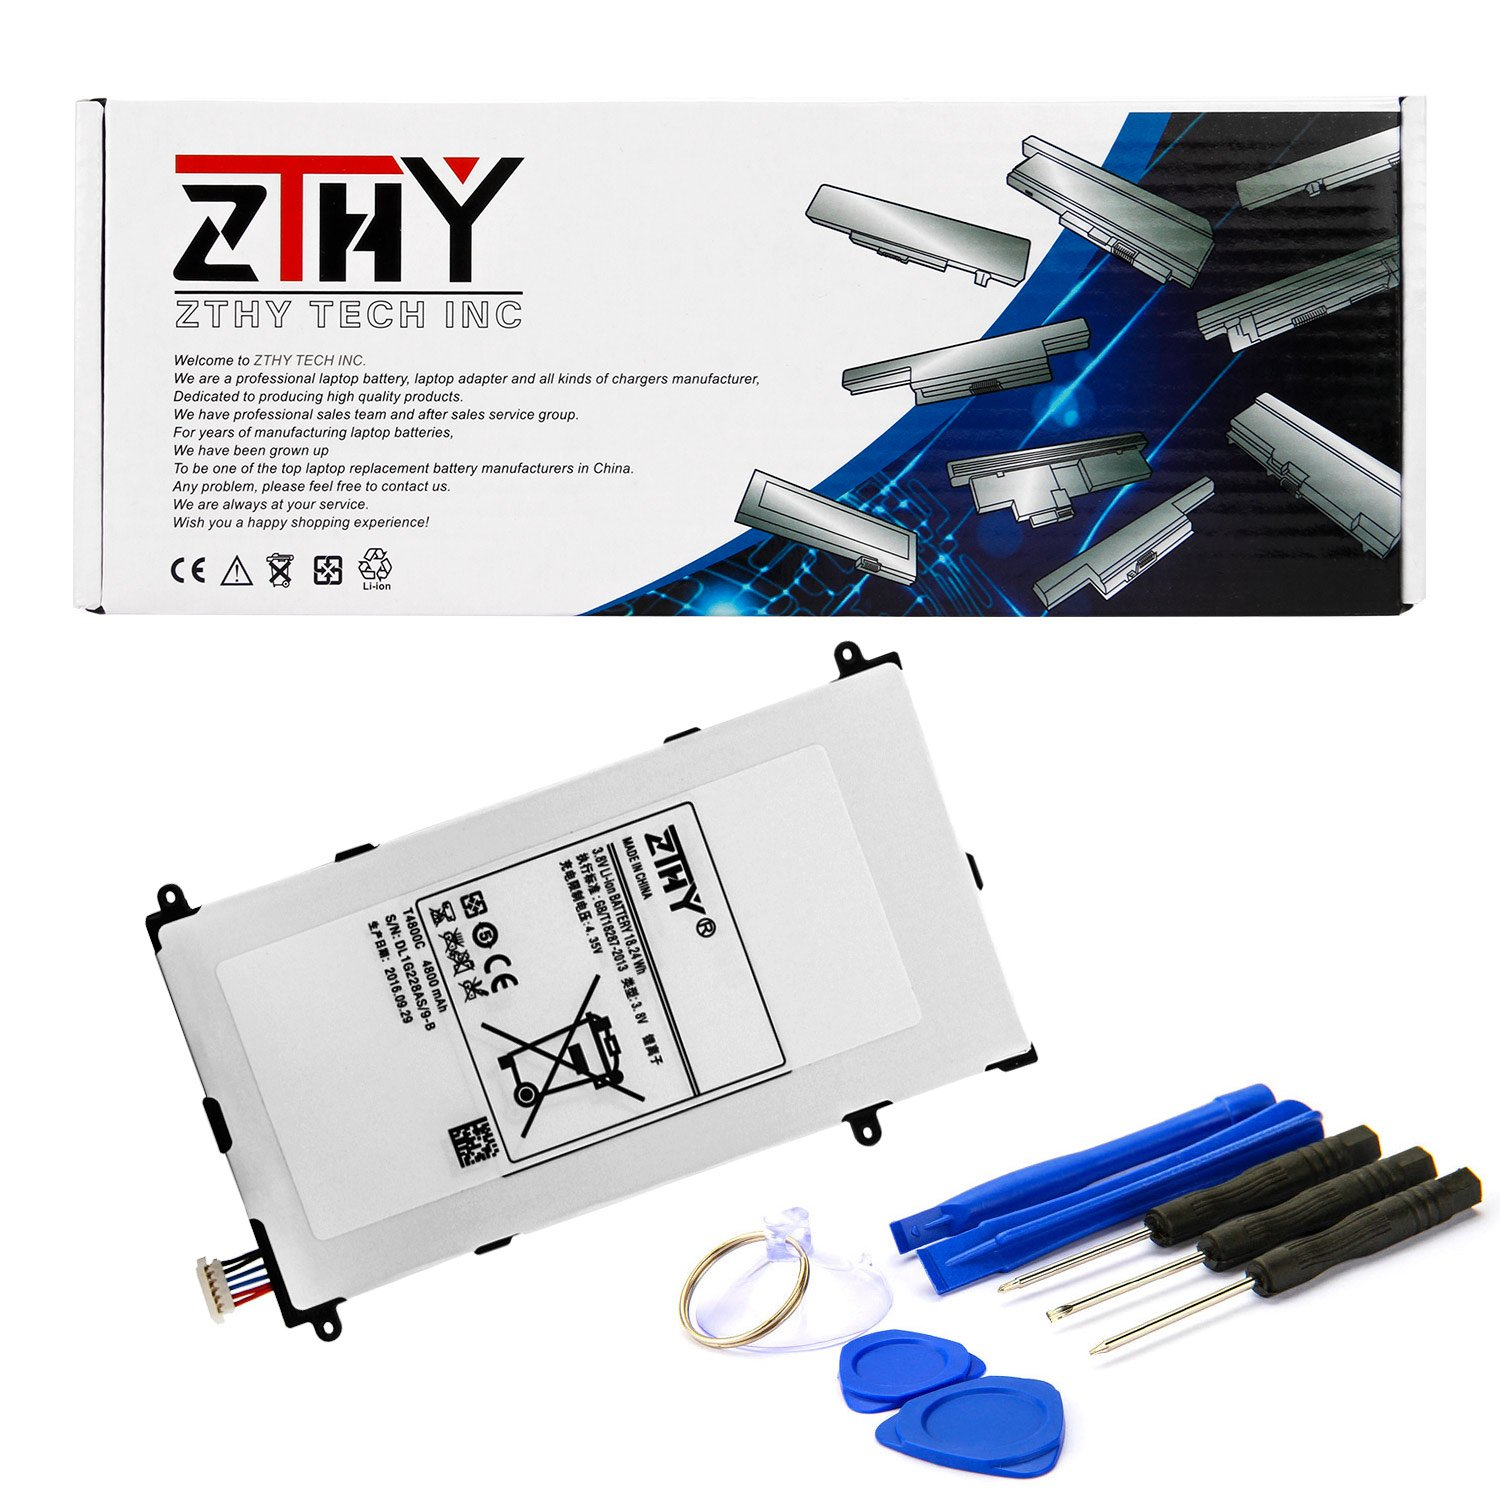 ZTHY Compatible T4800E T4800C Tablet Battery Replacement for Samsung Galaxy Tab Pro 8.4'' SM-T325 SM-T320 SM-T321 Series Tablet T4800K 4800mAh with Tools